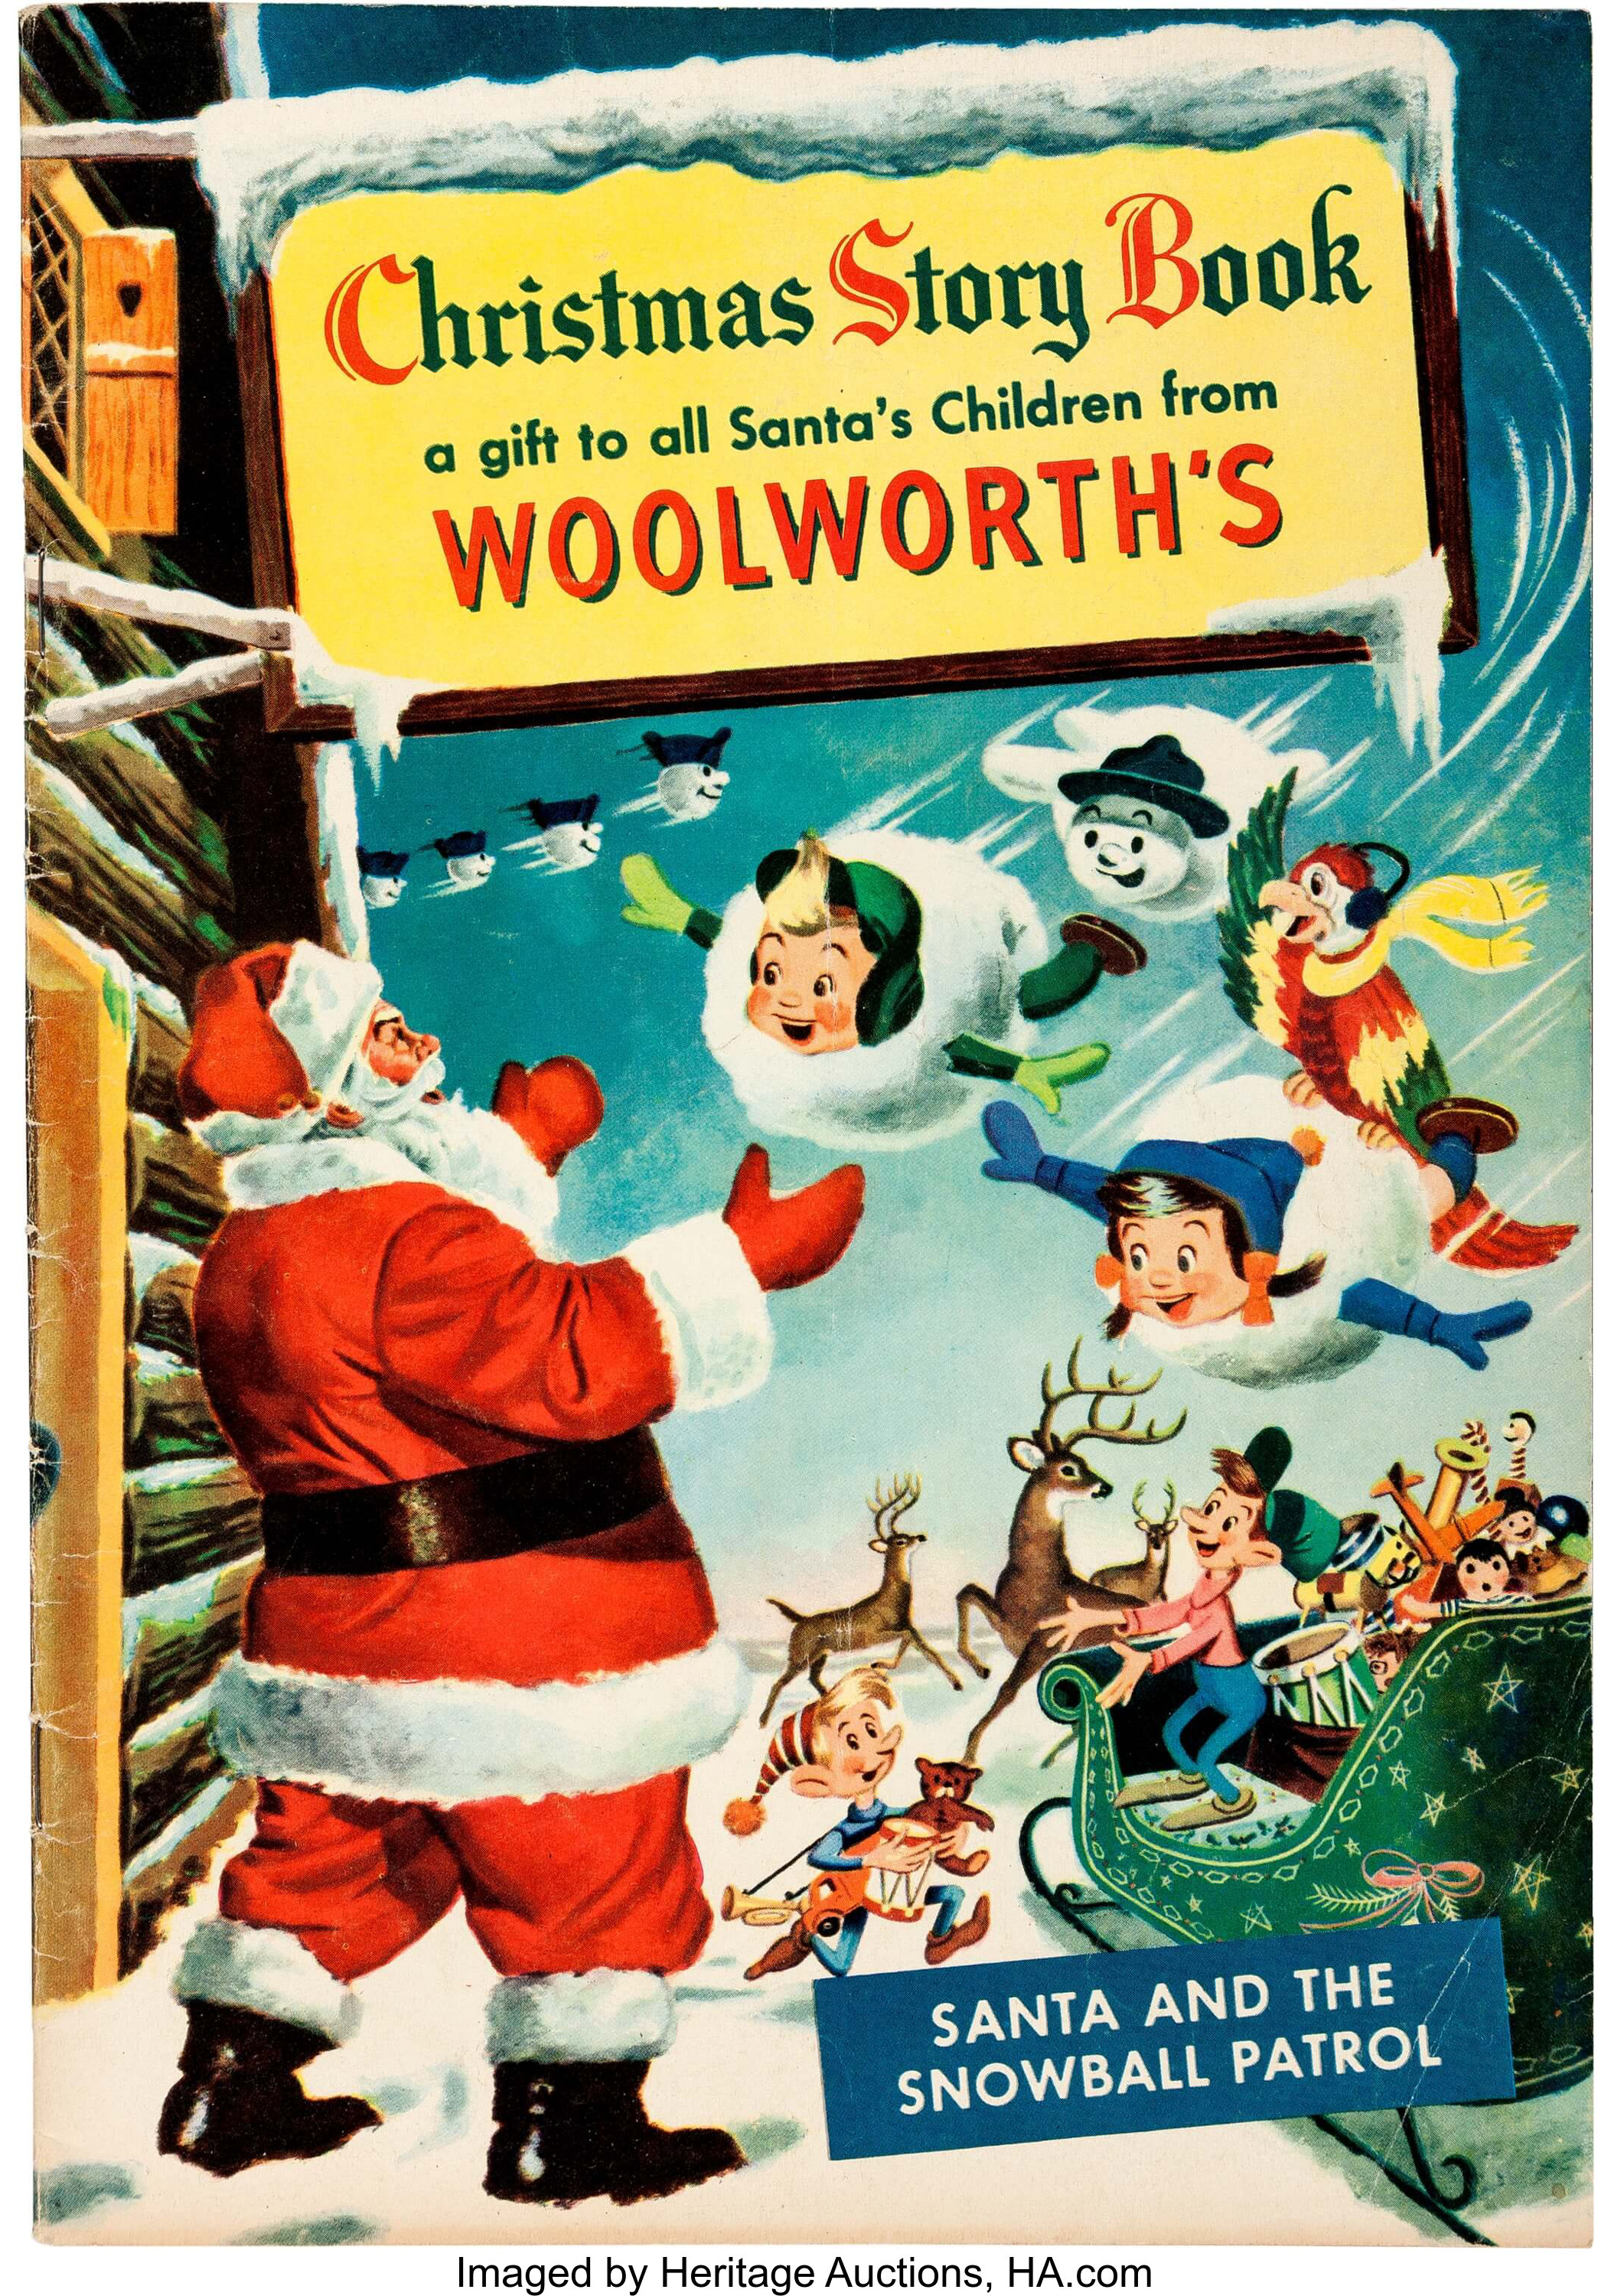 Christmas Toy Catalogs By Mail.Christmas Story Book Woolworth S Promo Comic And Catalog